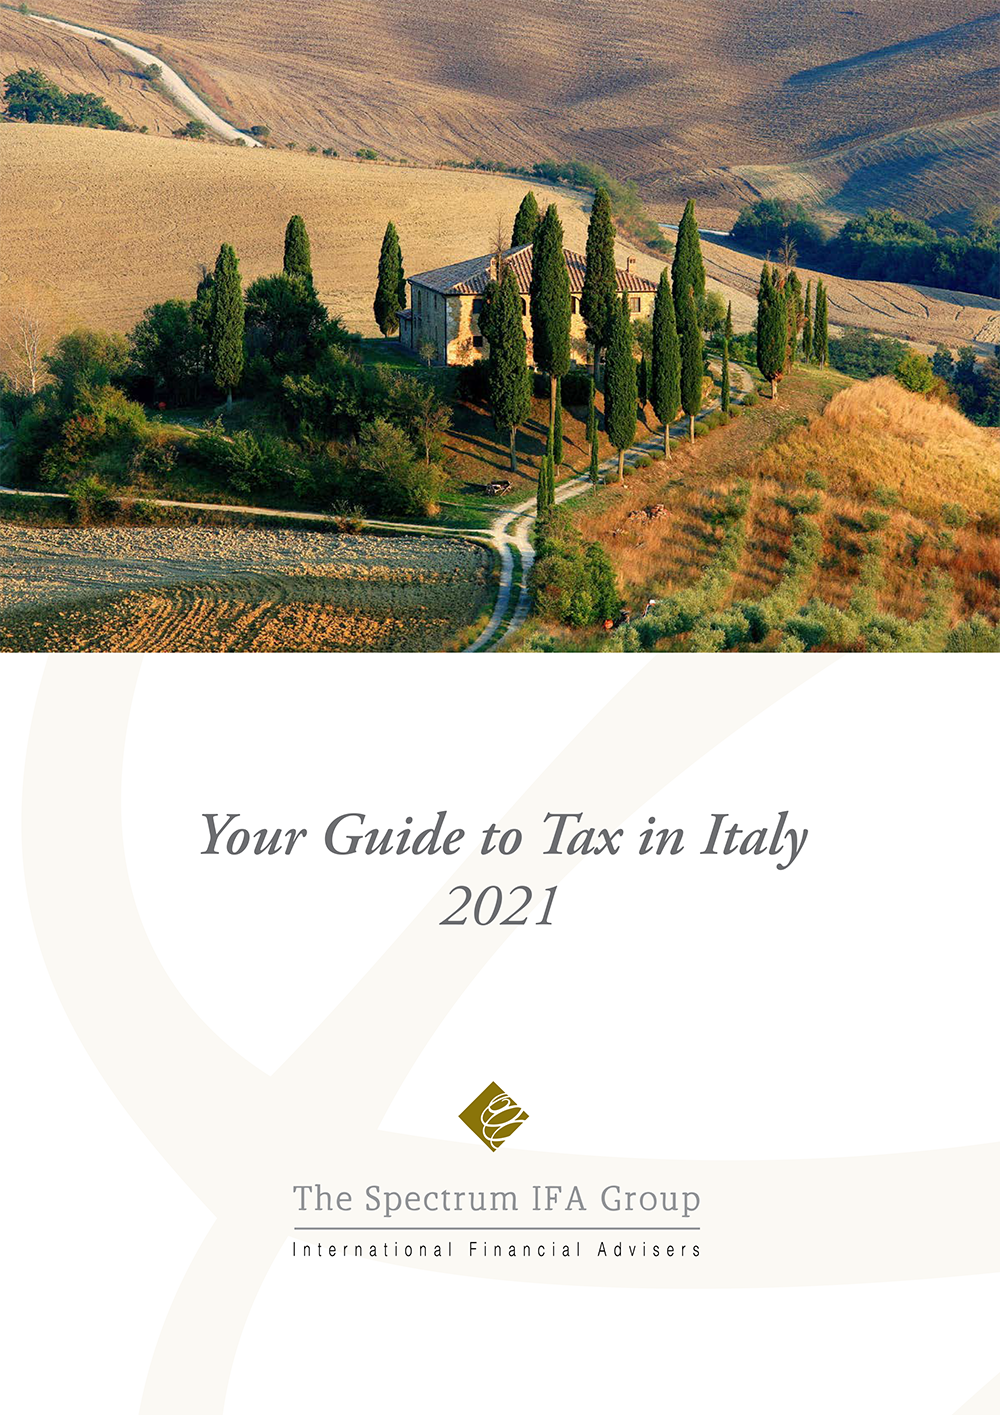 Tax Guide to Italy